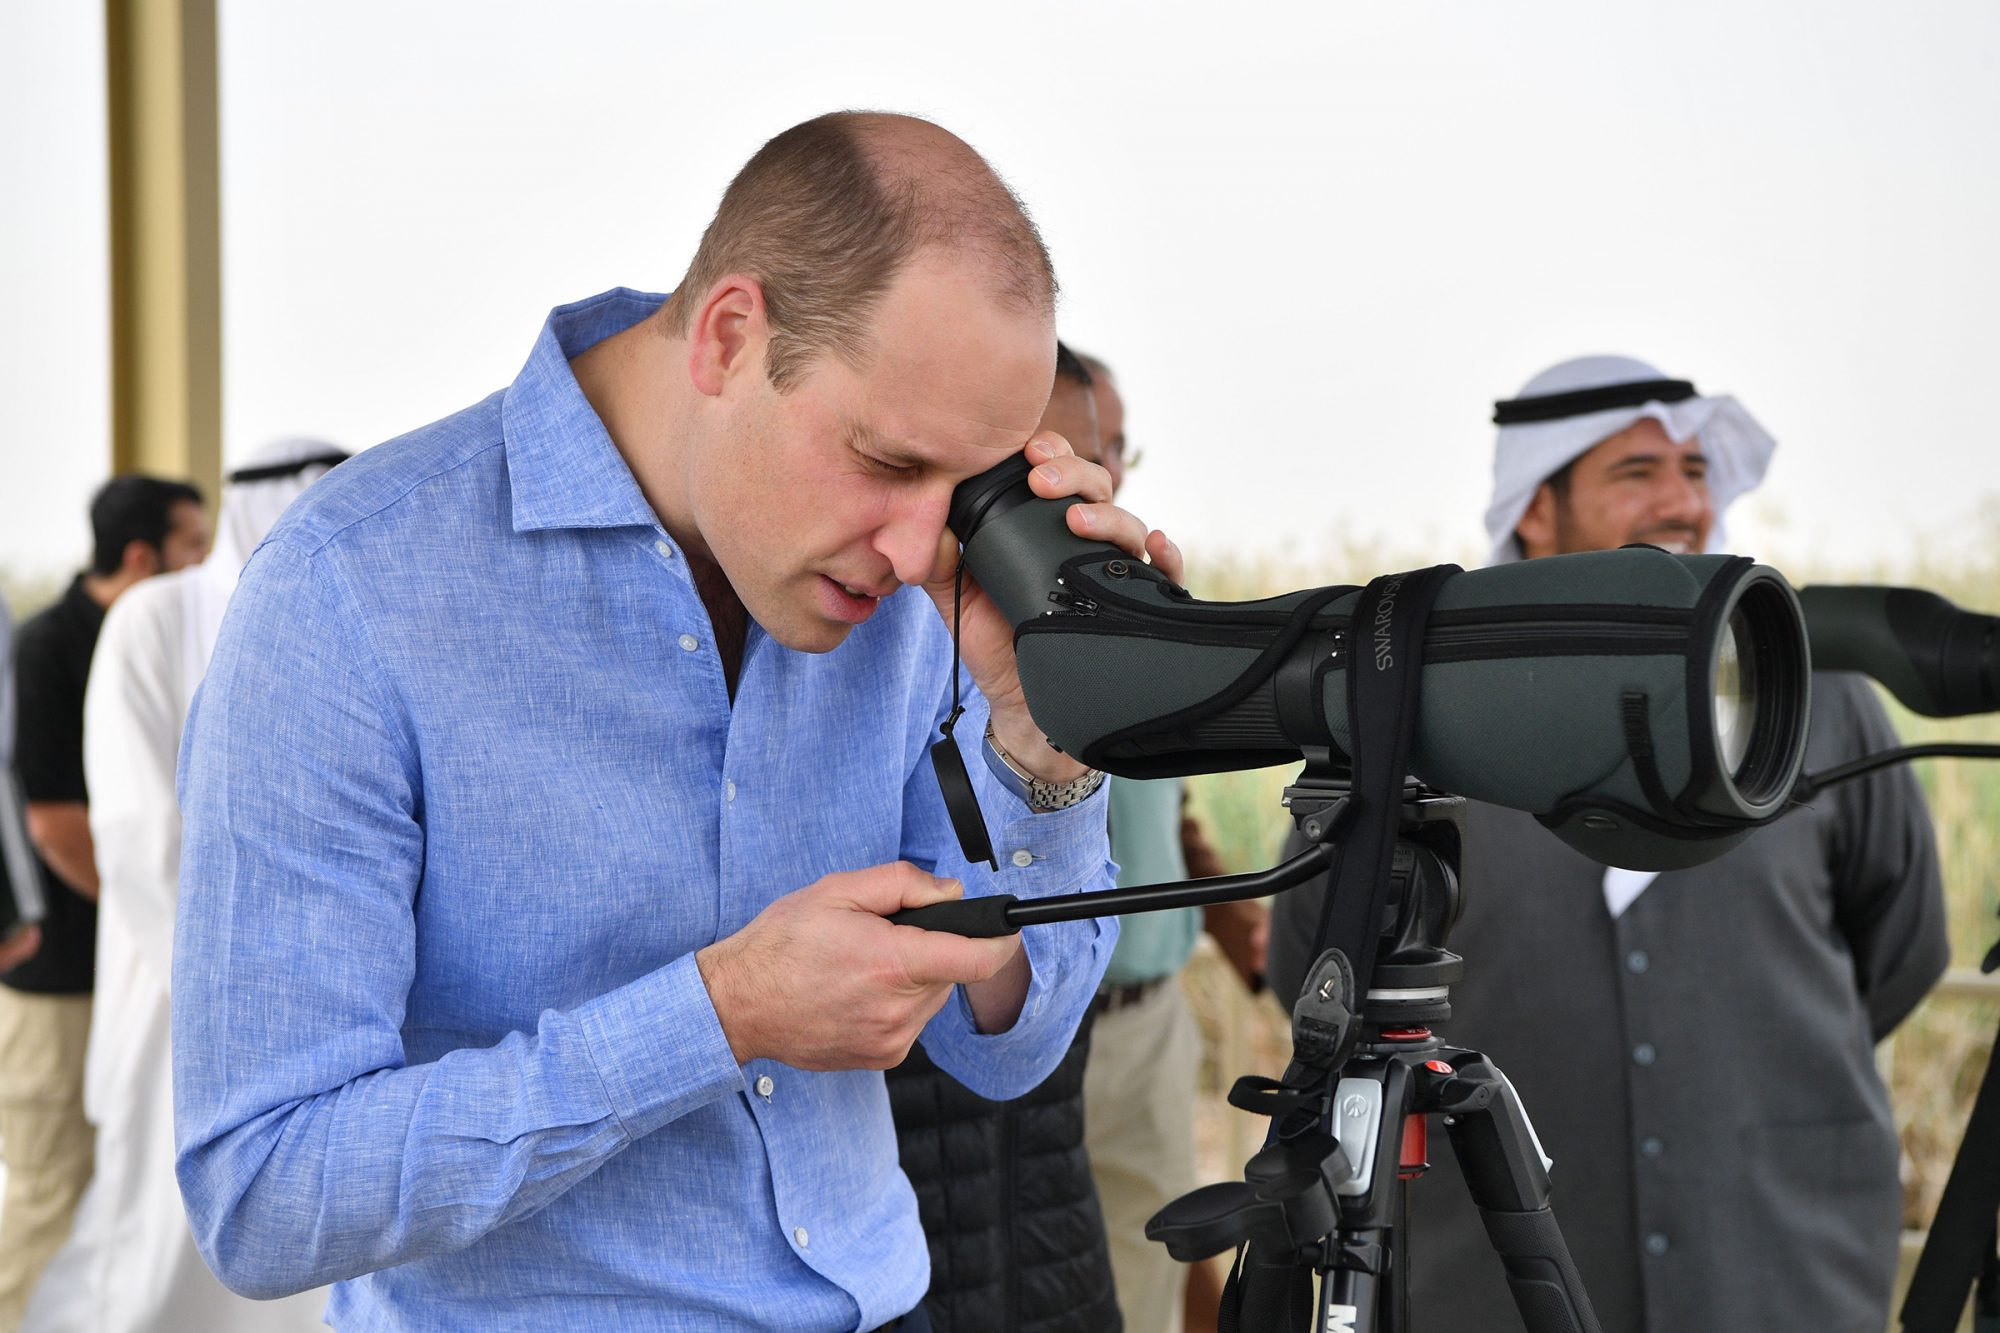 Prince William during a visit to the Jahra Nature Reserve Prince William visit to Kuwait - 02 Dec 2019 Prince William visits Kuwait City's wetlands at the Jahra Nature Reserve to learn more about Kuwait's ambitious plans to protect its natural environment from human and environmental challenges. His Royal Highness will meet scientists from Kuwait's Environmental Public Authority and the UK's Centre for Environment, Fisheries & Aquaculture Science (Cefas) agency to learn more about their partnership to promote Kuwait's biodiversity and inform its approach to marine environment conservation. The Duke will also visit the reserve's salt marshes, reed beds and sandy sabkha flats, and will join scientists in a number of activities studying the wetlands' wildlife